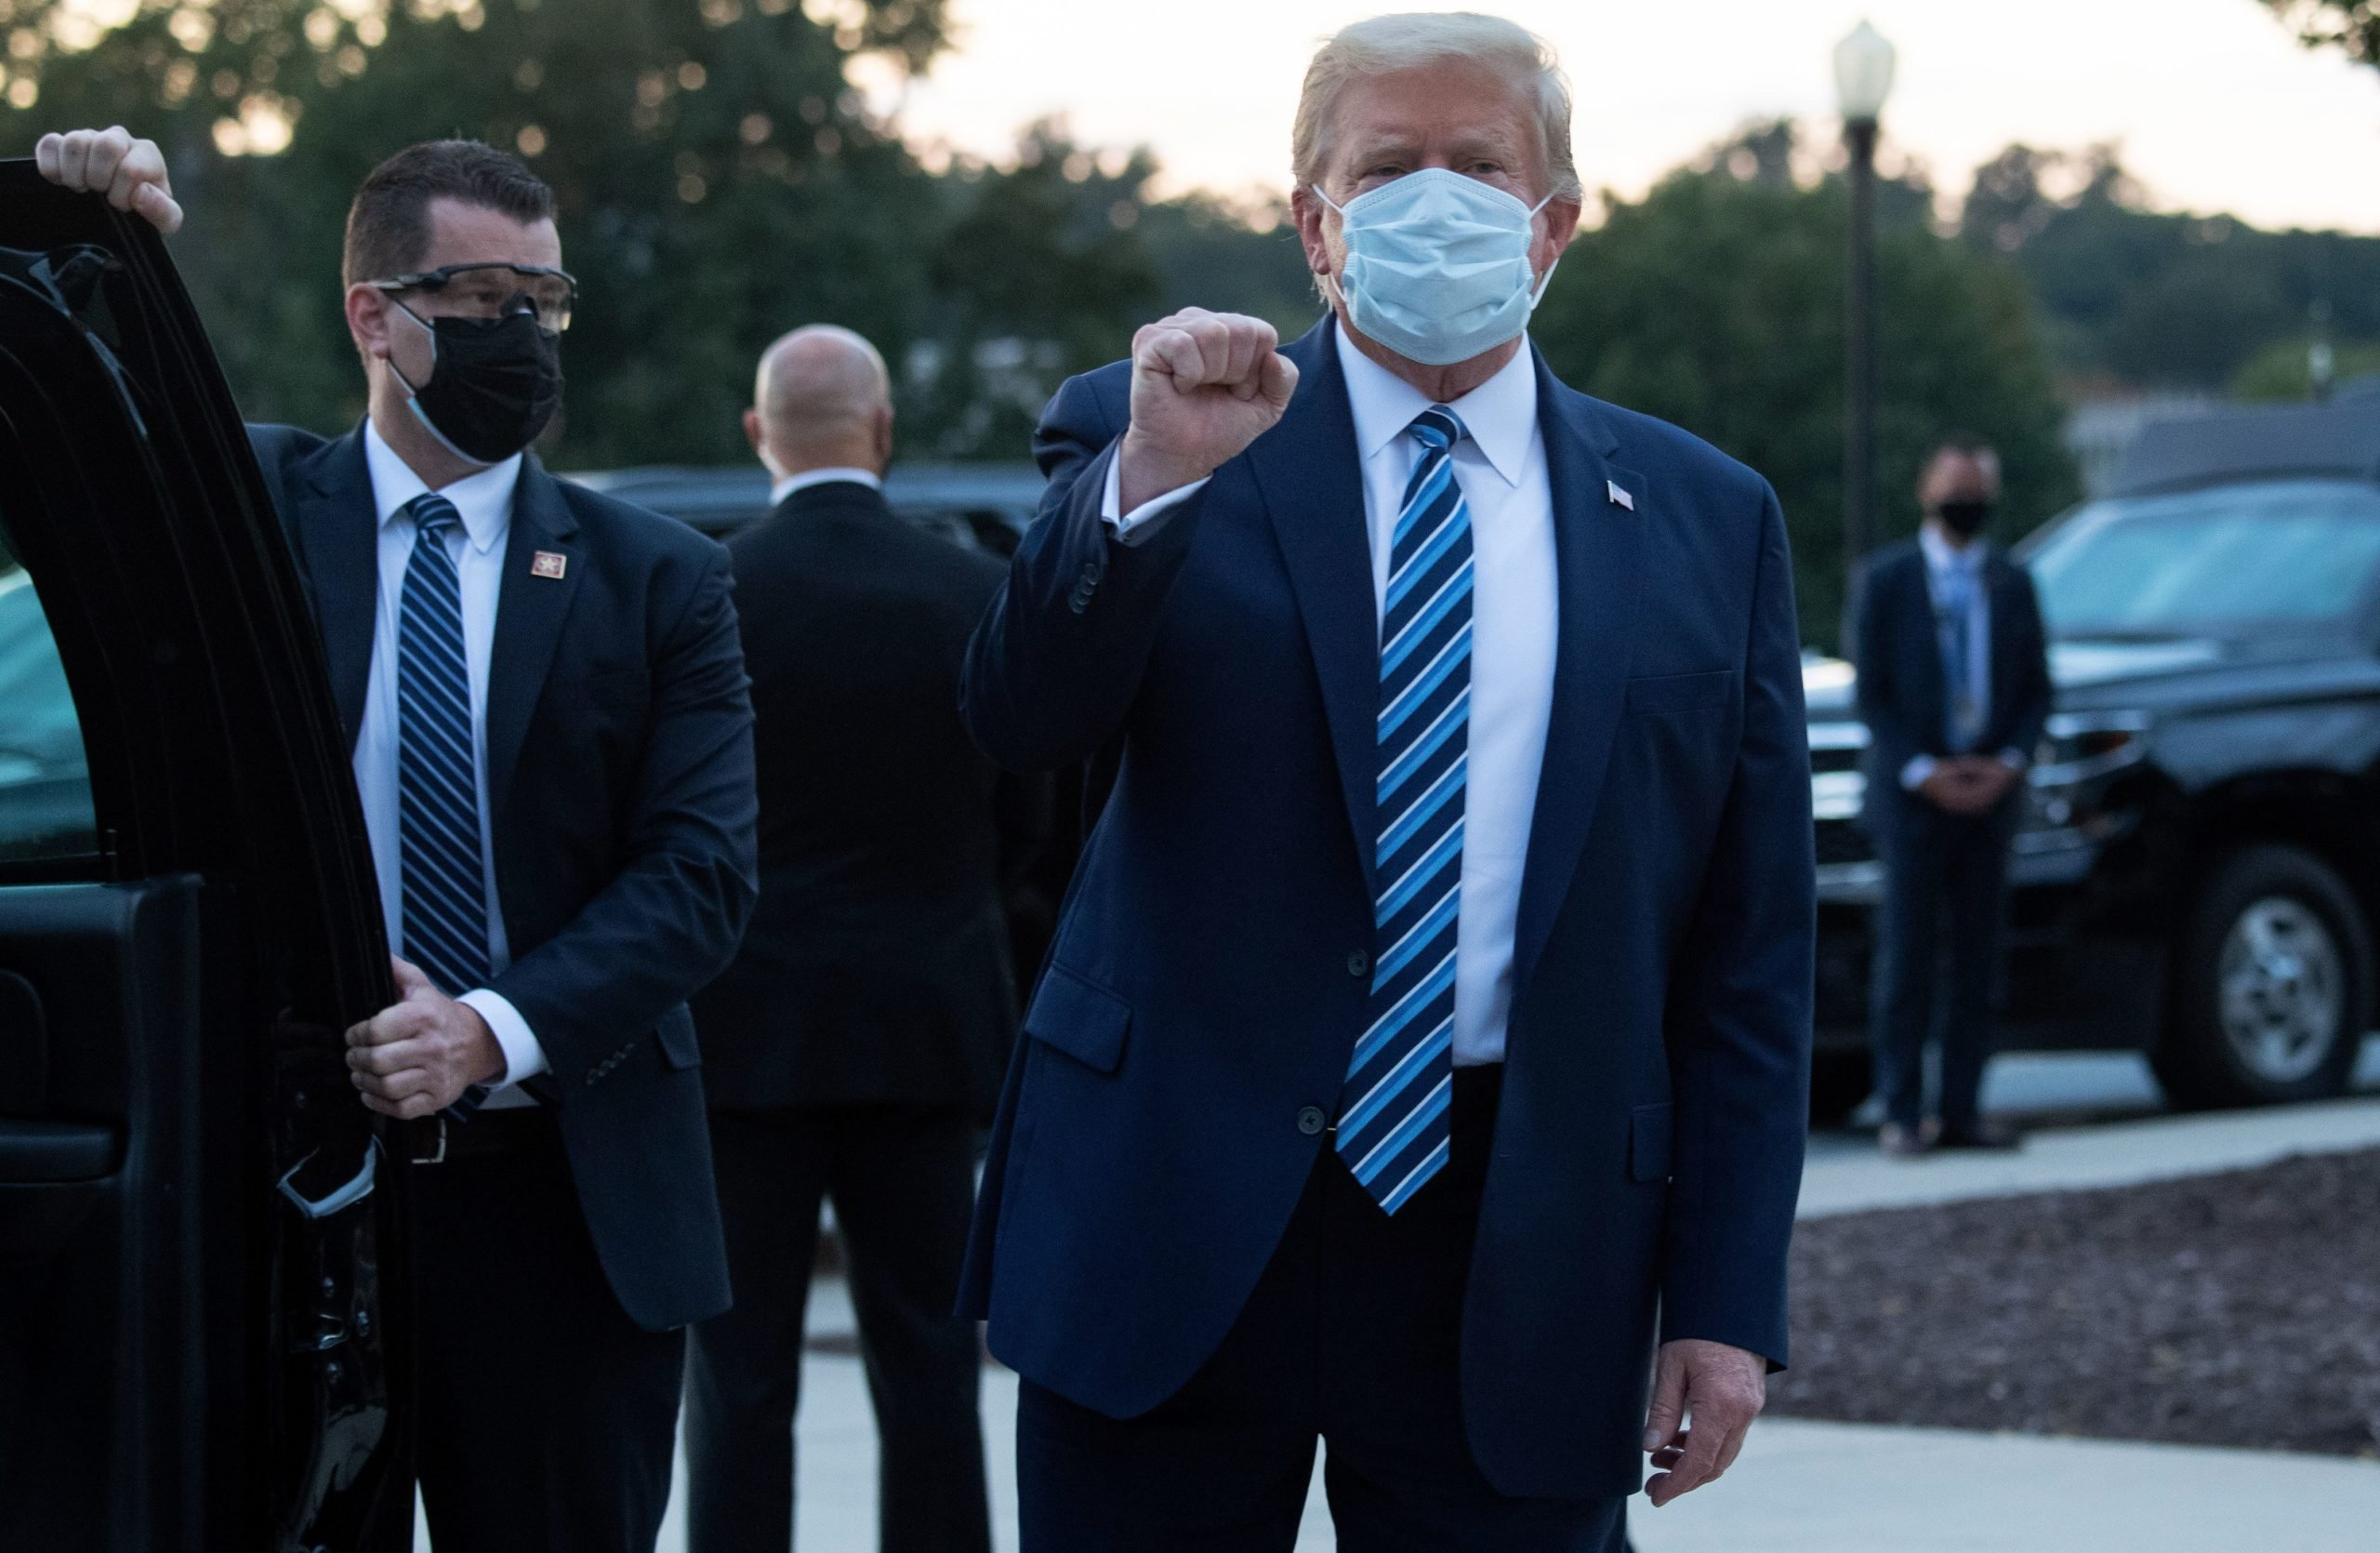 """US President Donald Trump pumps his fist as he leaves Walter Reed Medical Center in Bethesda, Maryland heading towards Marine One on October 5, 2020, to return to the White House after being discharged. - Trump announced Monday he would be """"back on the campaign trail soon"""", just before returning to the White House from a hospital where he was being treated for Covid-19. (Photo by SAUL LOEB/AFP via Getty Images)"""